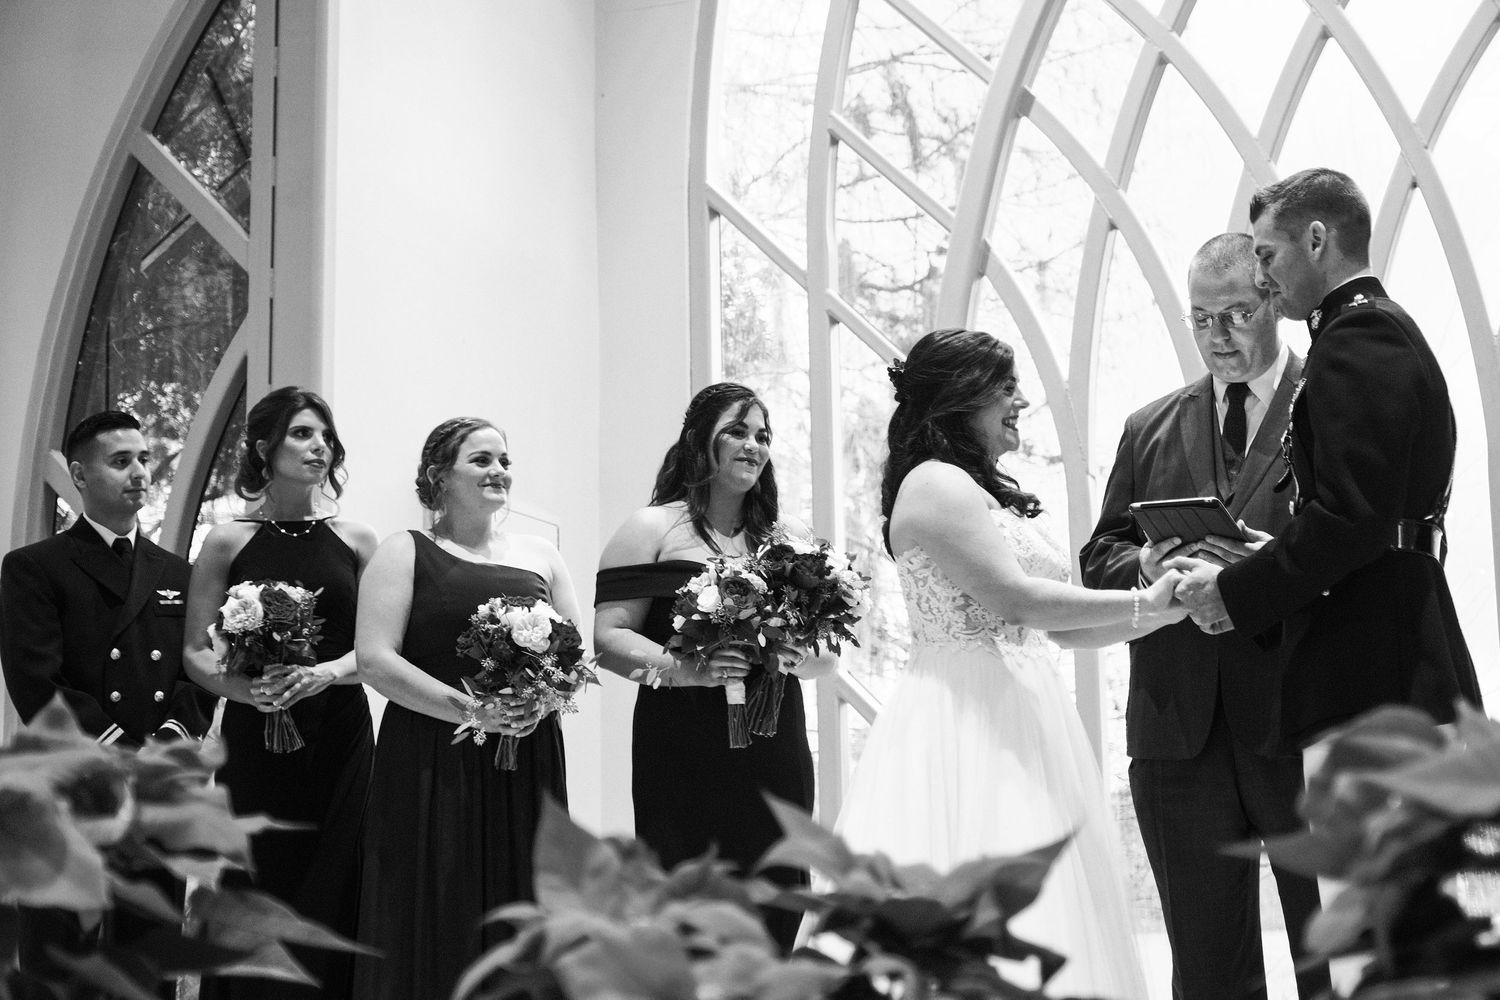 A wedding ceremony at the Baughman Center. Hybrid wedding photography by Chris Watkins.